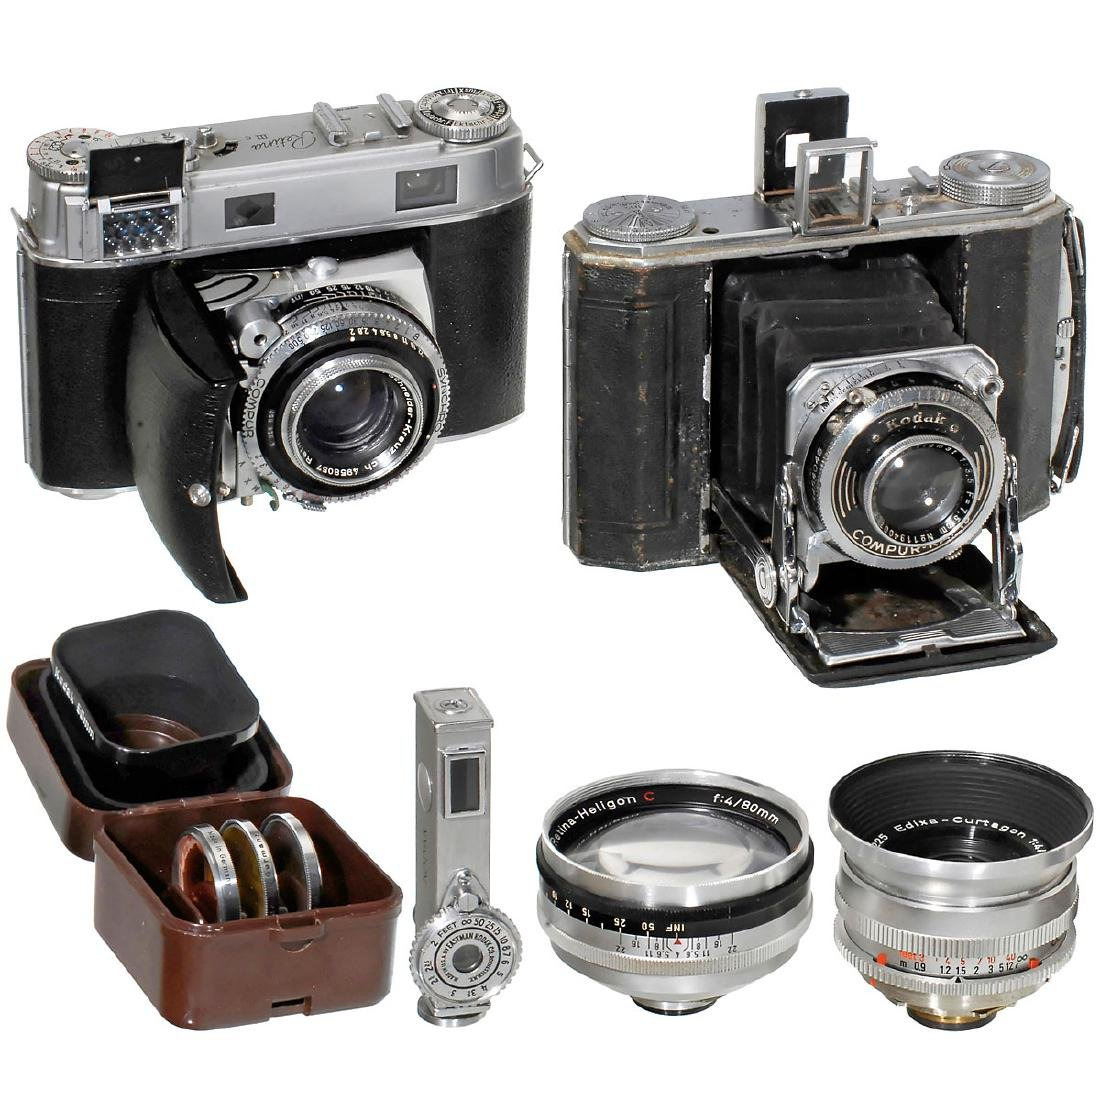 Kodak Cameras and Lenses